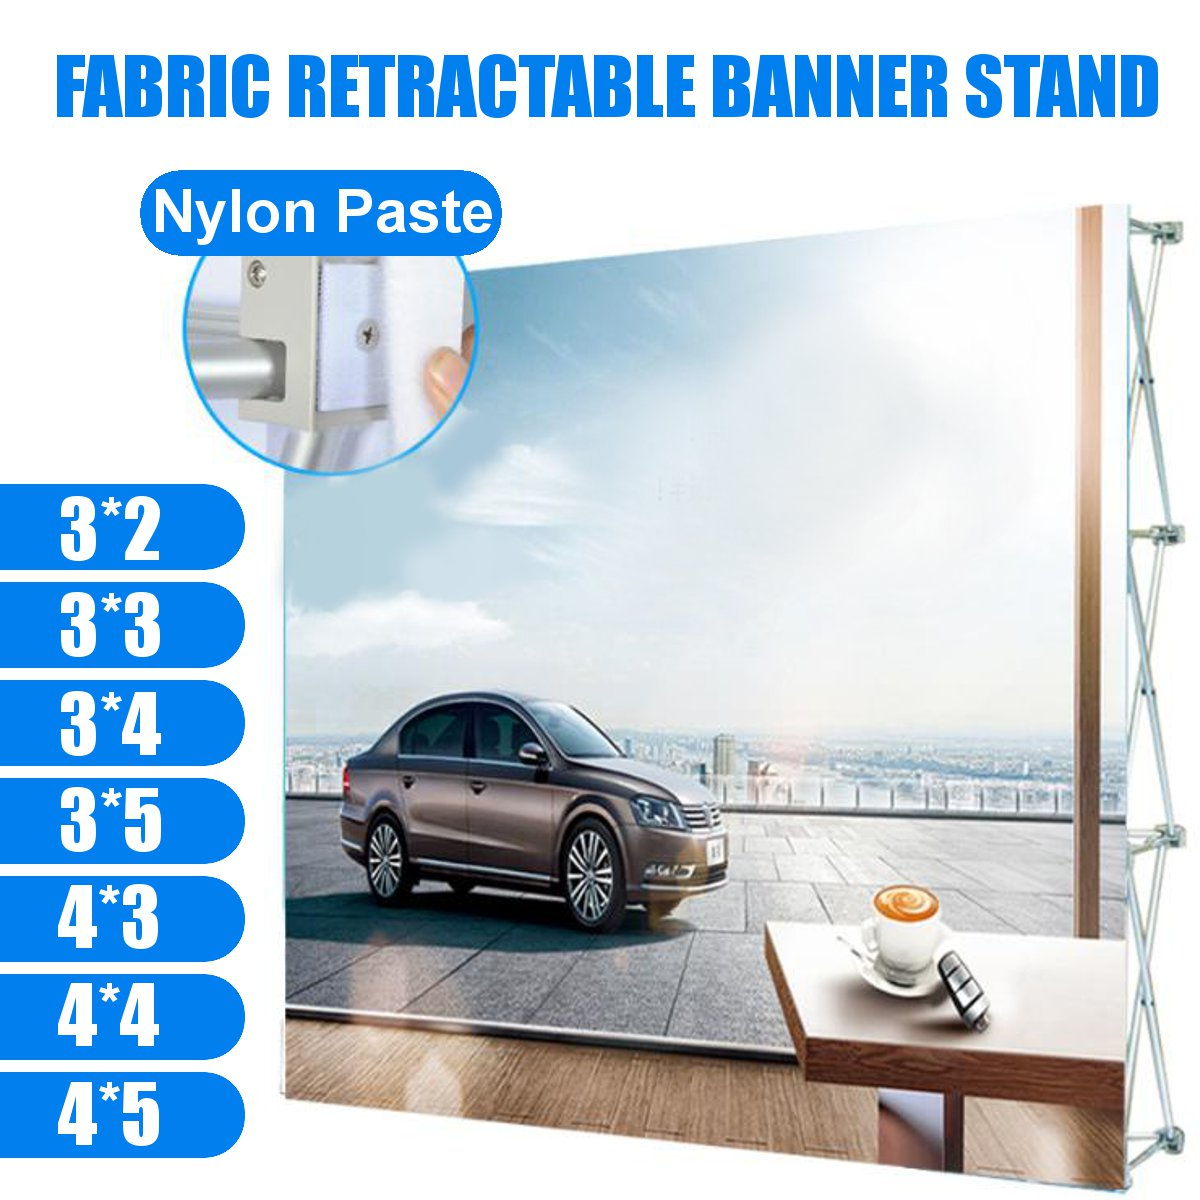 7 Sizes Aluminum Alloy Display Banner Stand Retractable Display Banner Stand Paste Stand Flower Wall Frame Backdrop Banner Rack